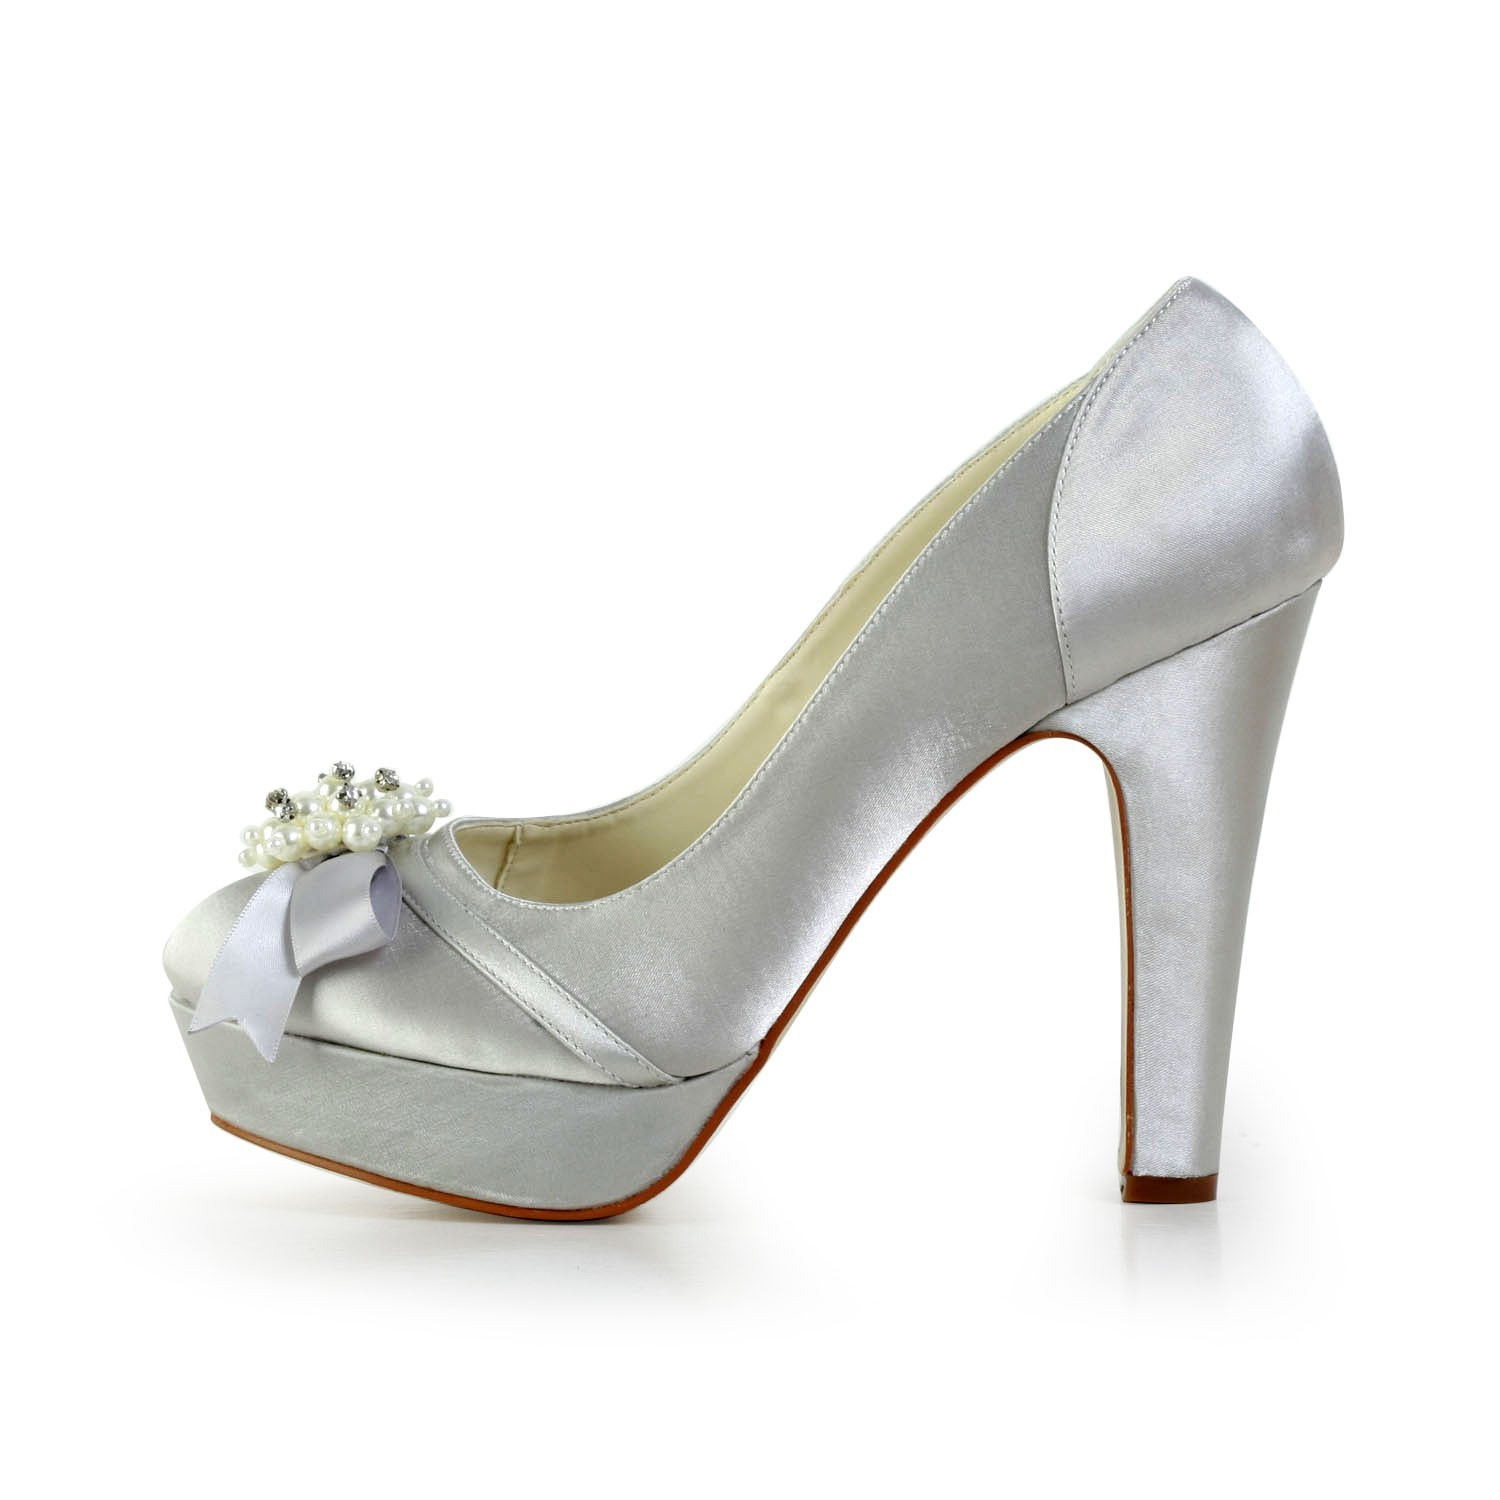 1 Inch Heels For Wedding: Women's Satin Chunky Heel Closed Toe Platform Silver